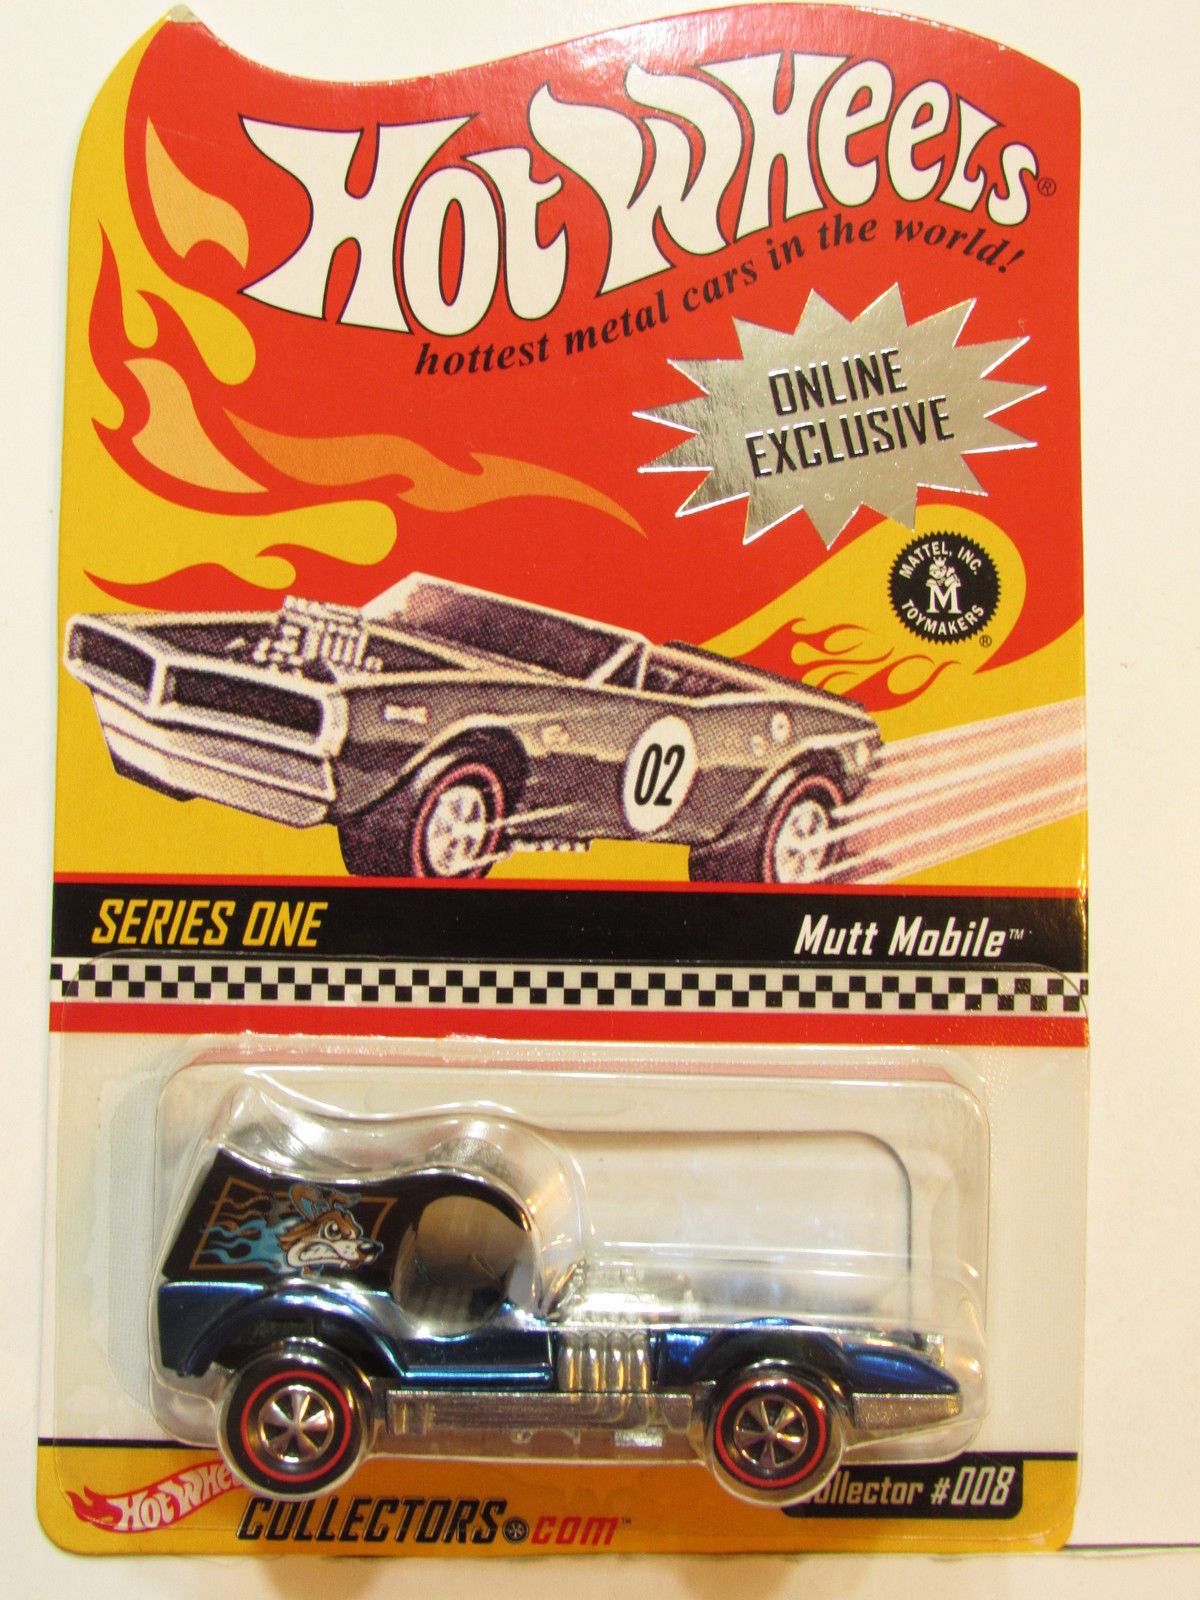 HOT WHEELS 2001 ONLINE EXCLUSIVE SERIES ONE COLLECTOR #008 MUTT MOBILE